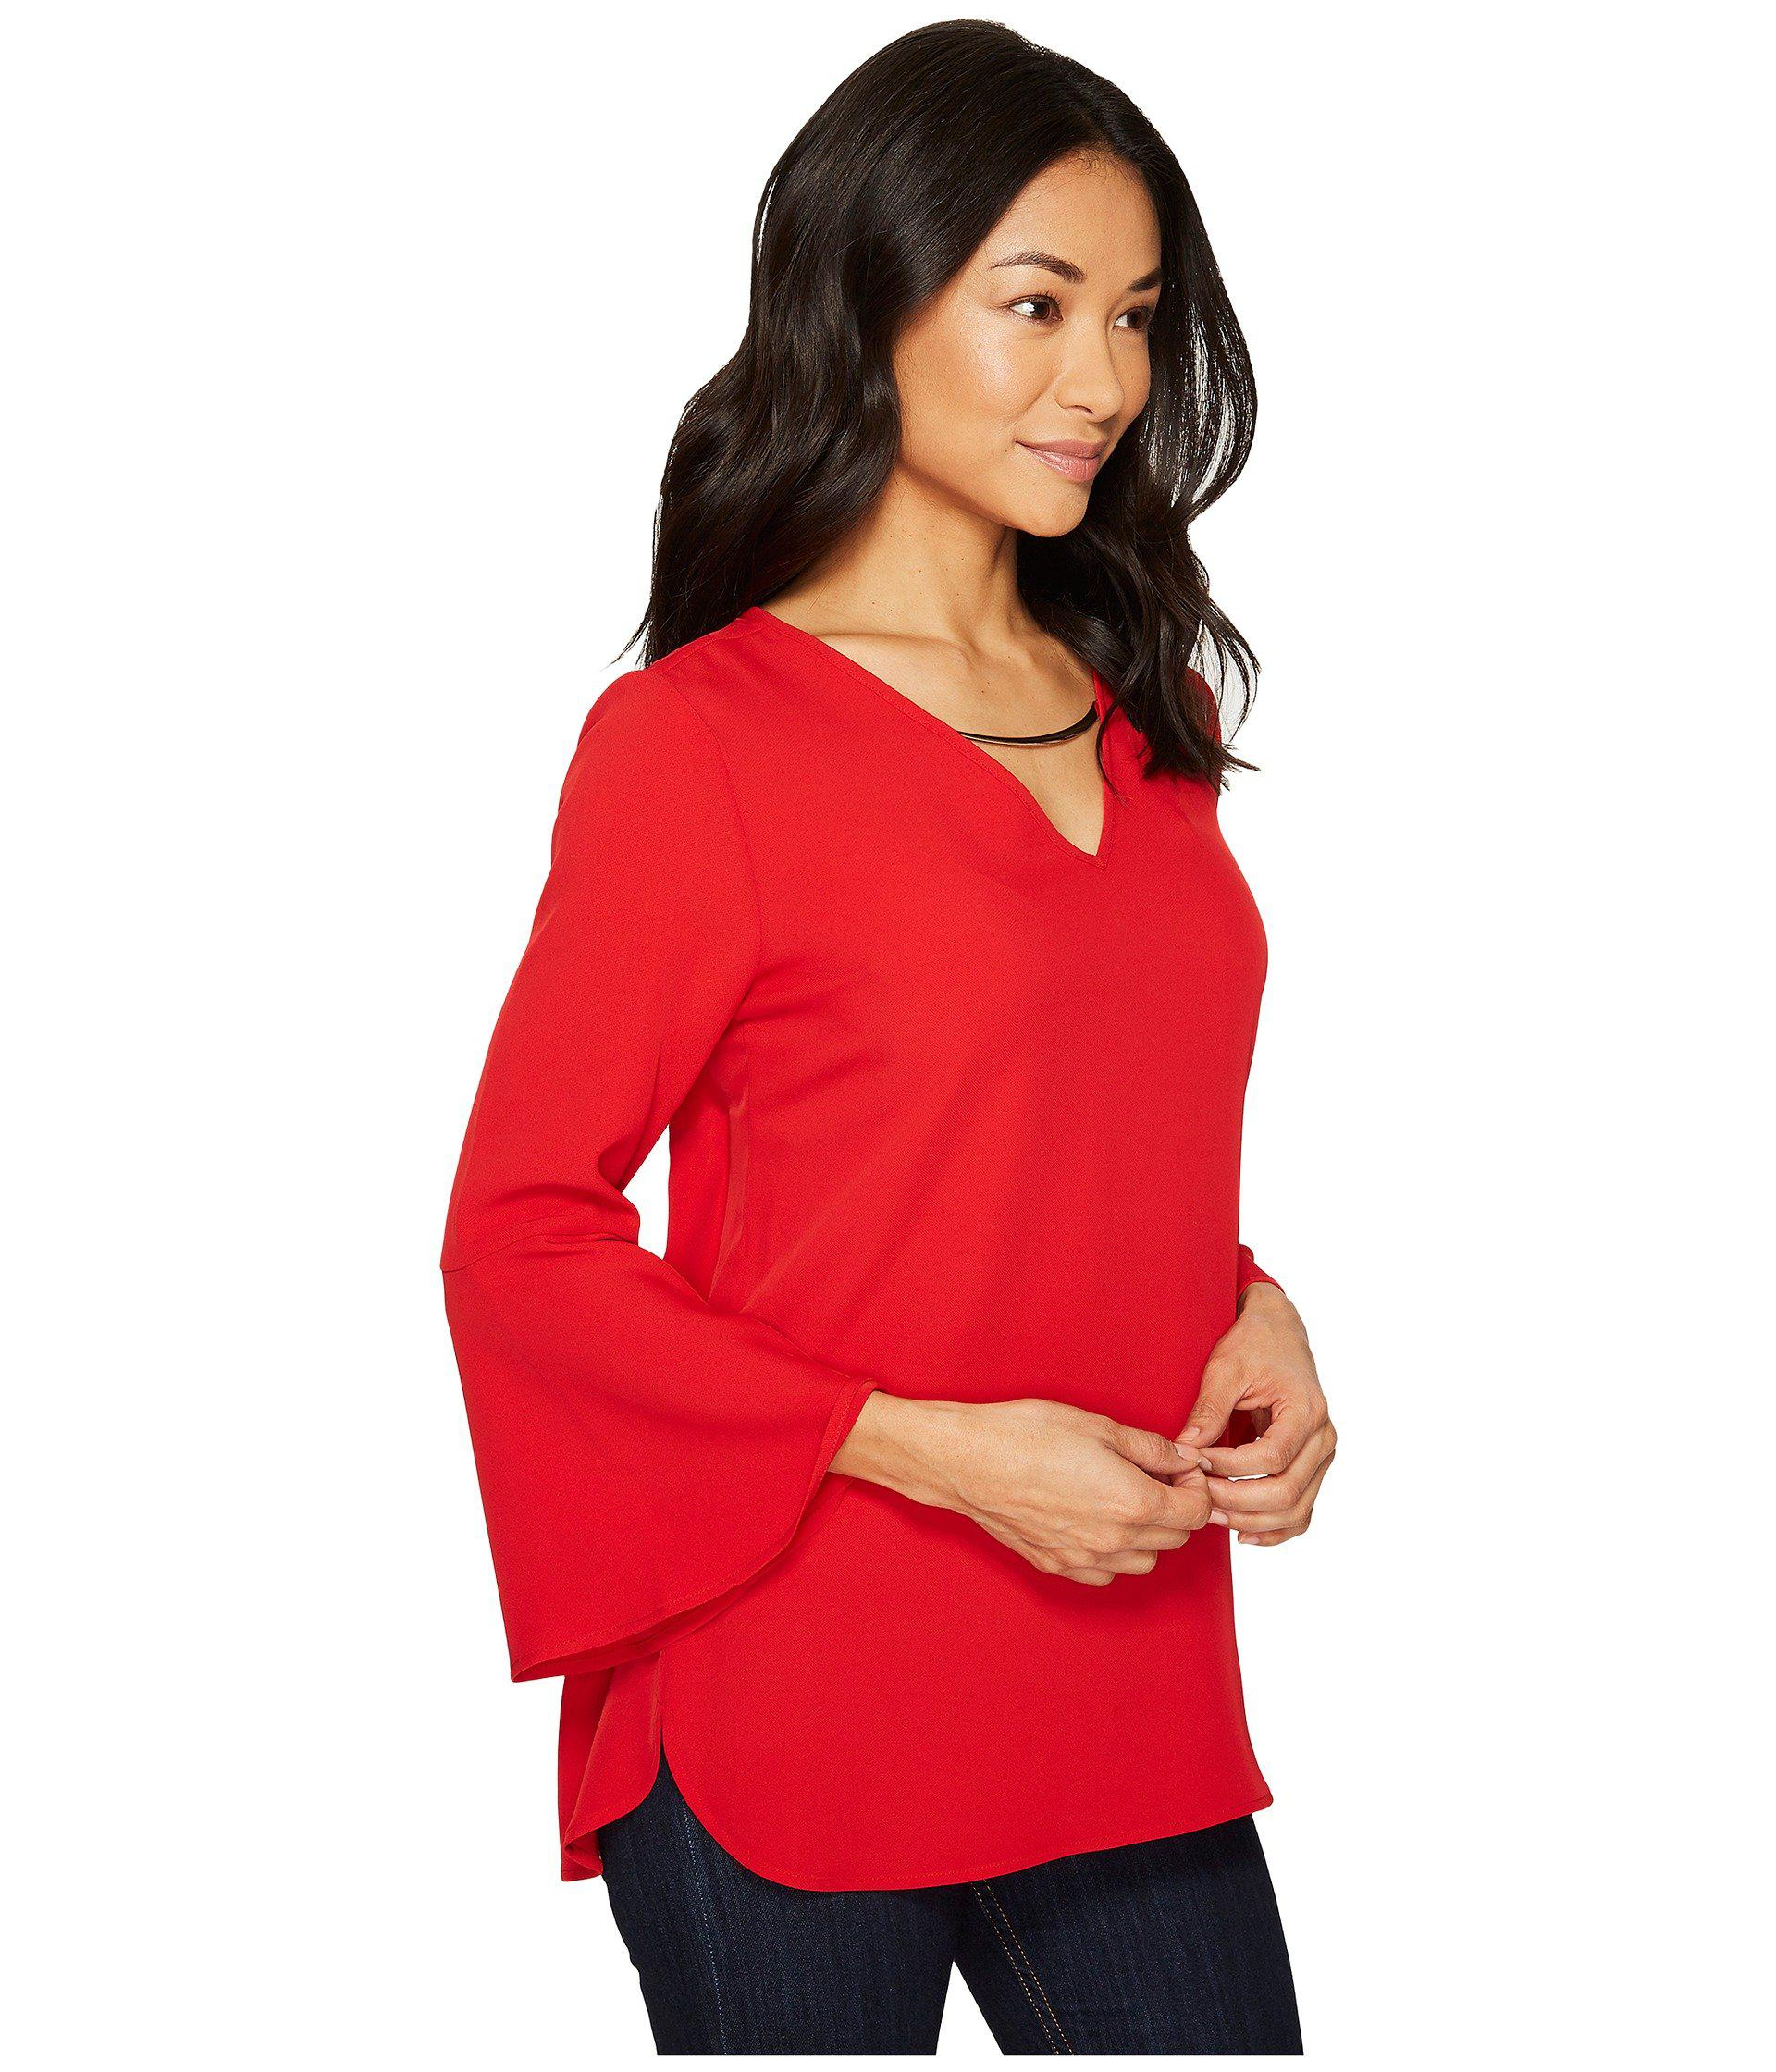 d8a62be54cde84 Calvin Klein Bell Sleeve V-neck Blouse W/ Hardware in Red - Lyst